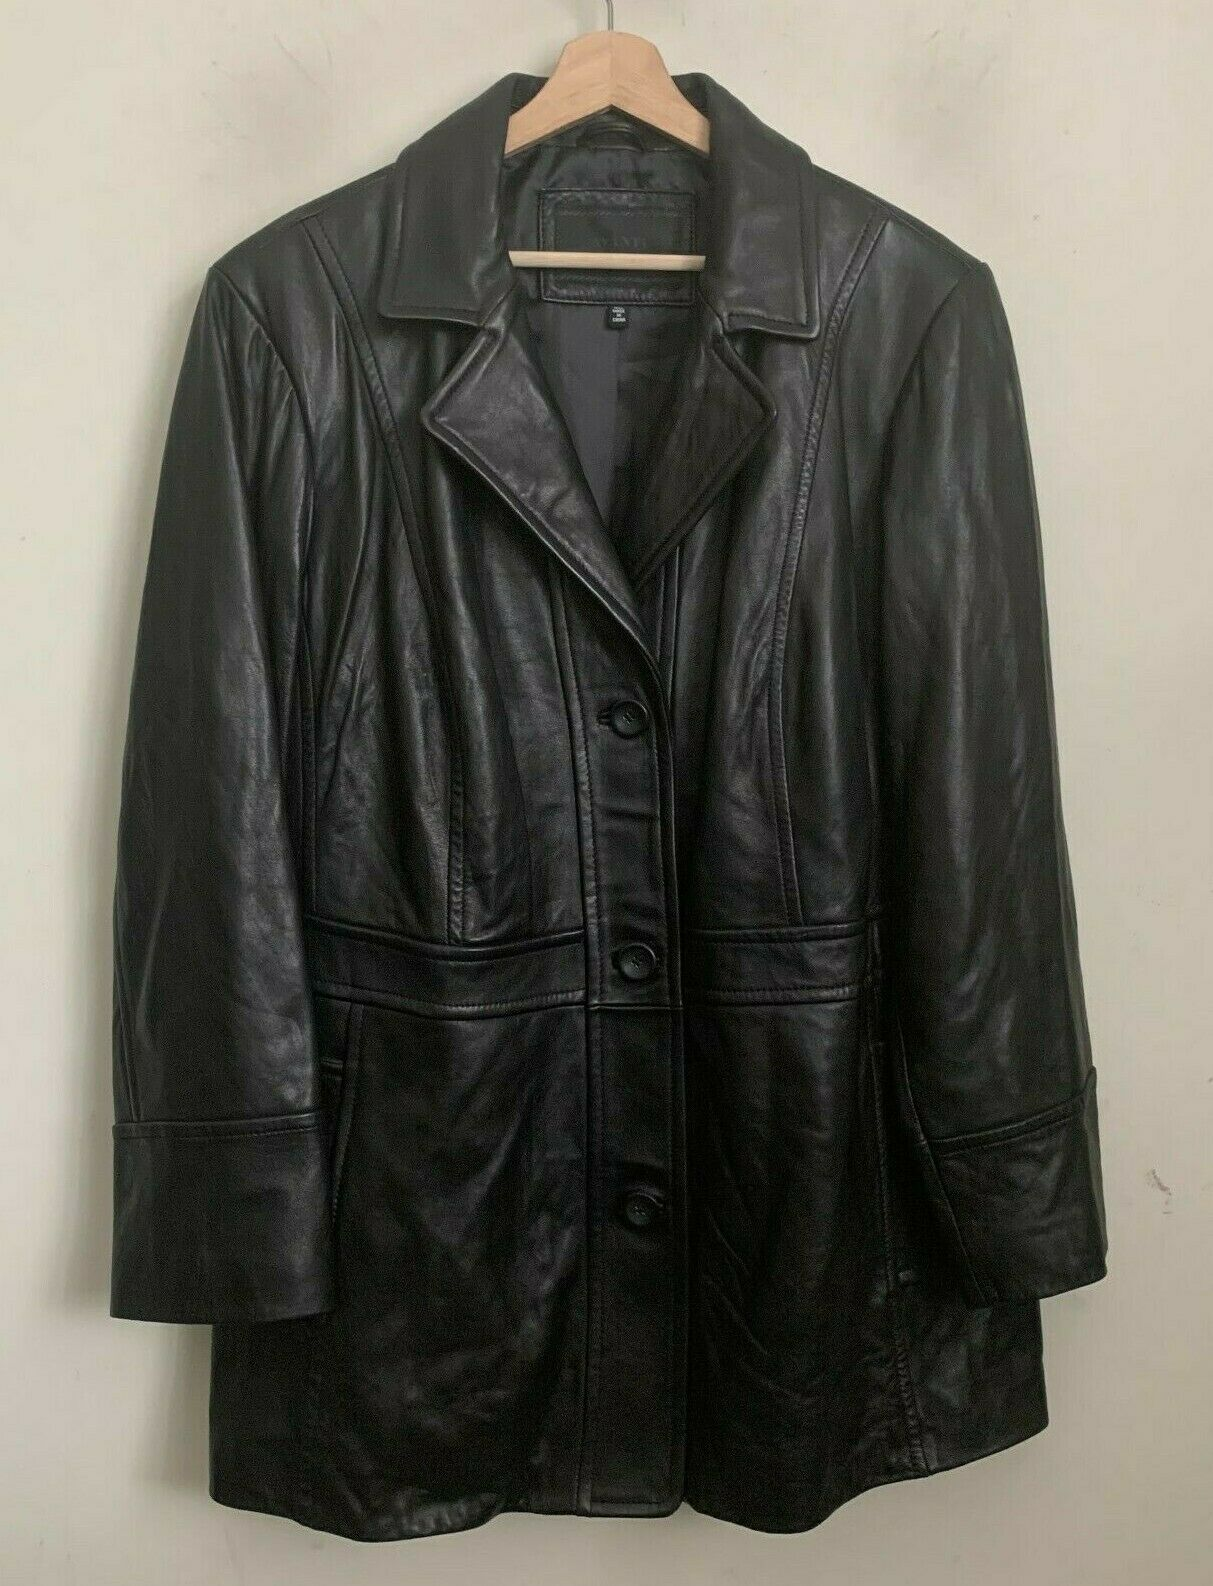 Avanti New York Woman Coat Black Leather Buttons Pockets Lined Size 3X NEW